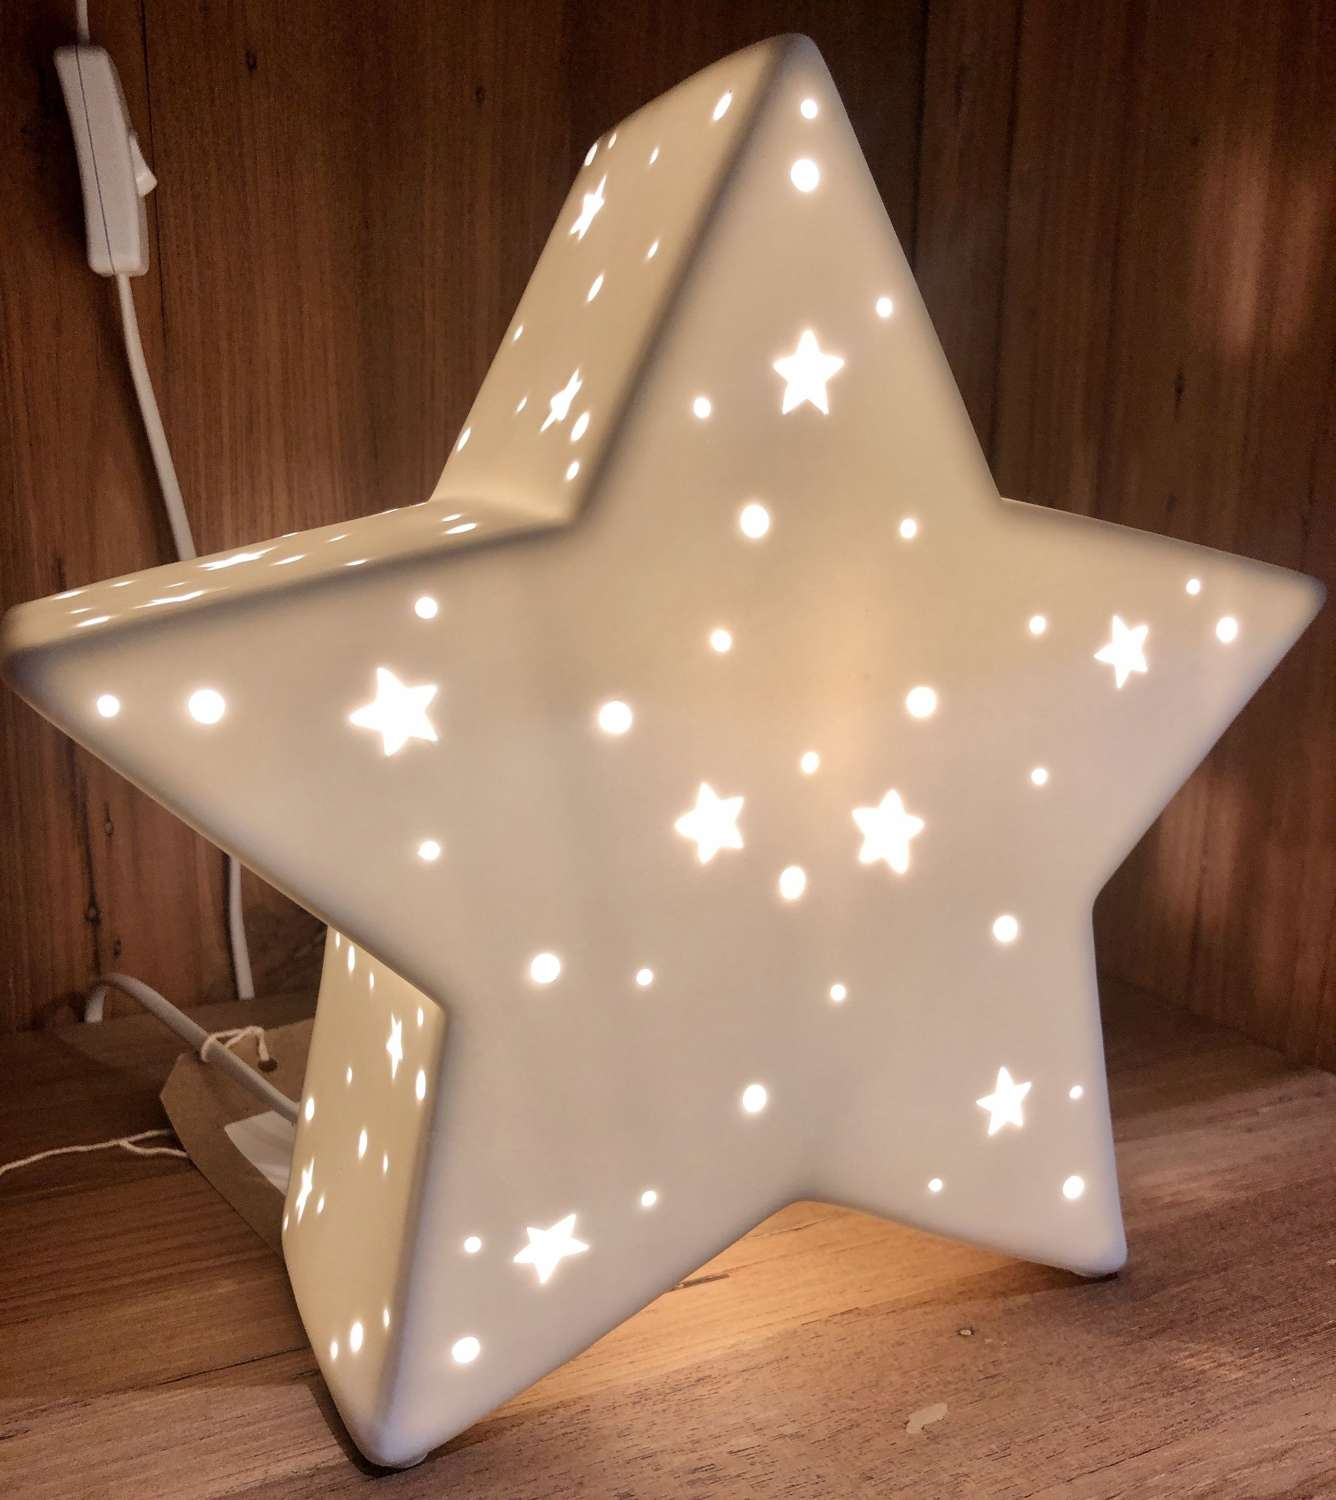 Ceramic star lamp